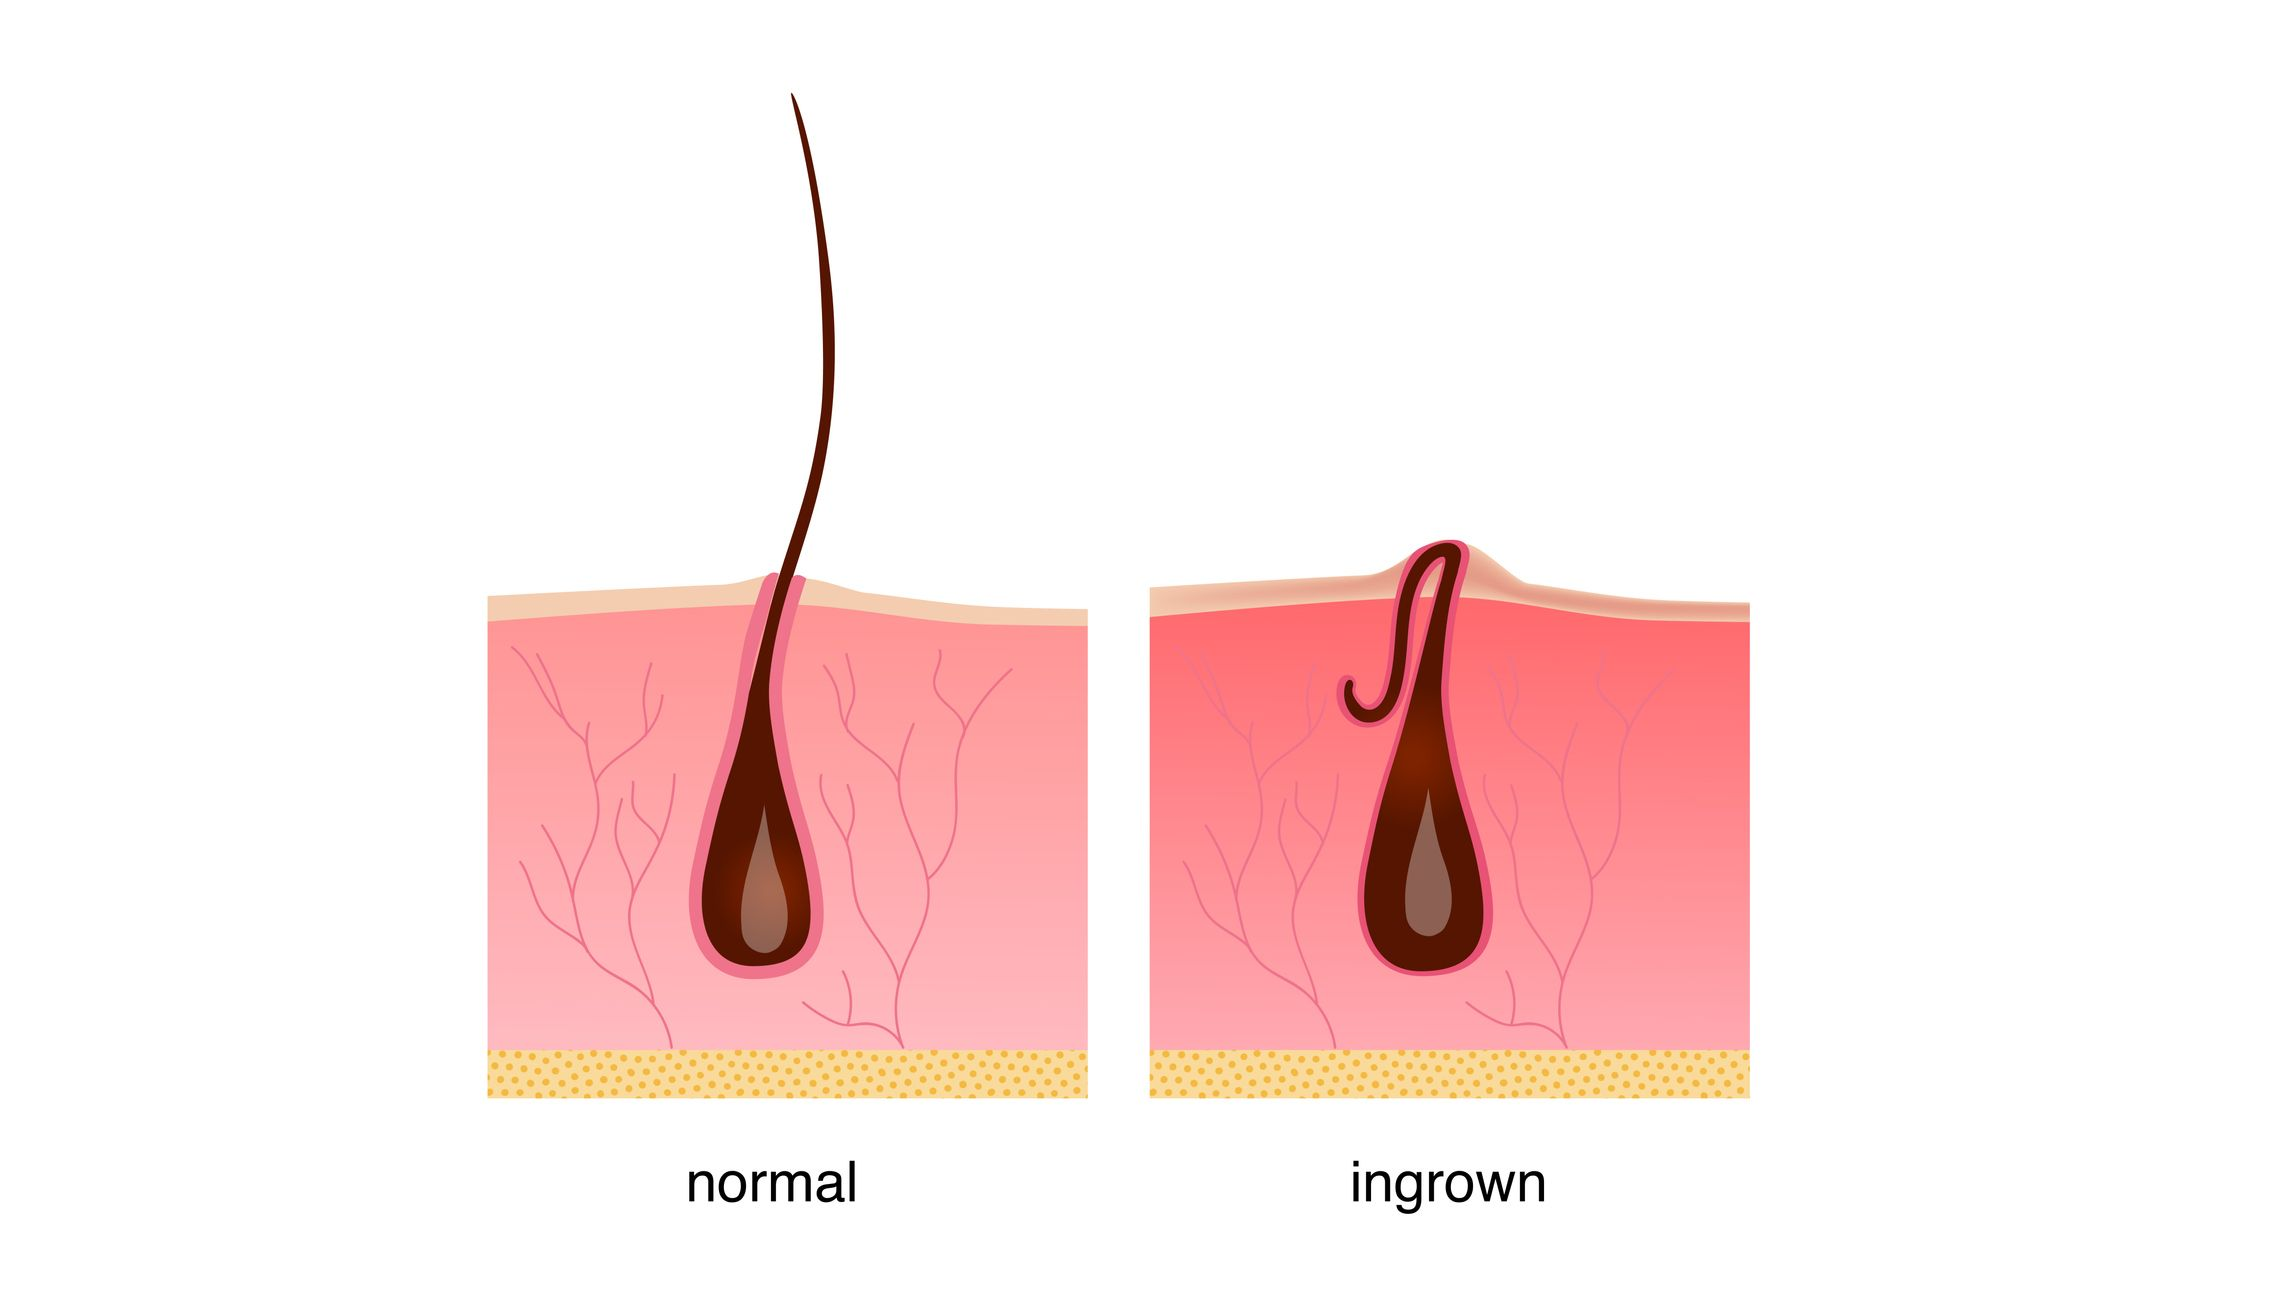 Ingrown hair after shaving, cream or epilator. Anatomy infographics